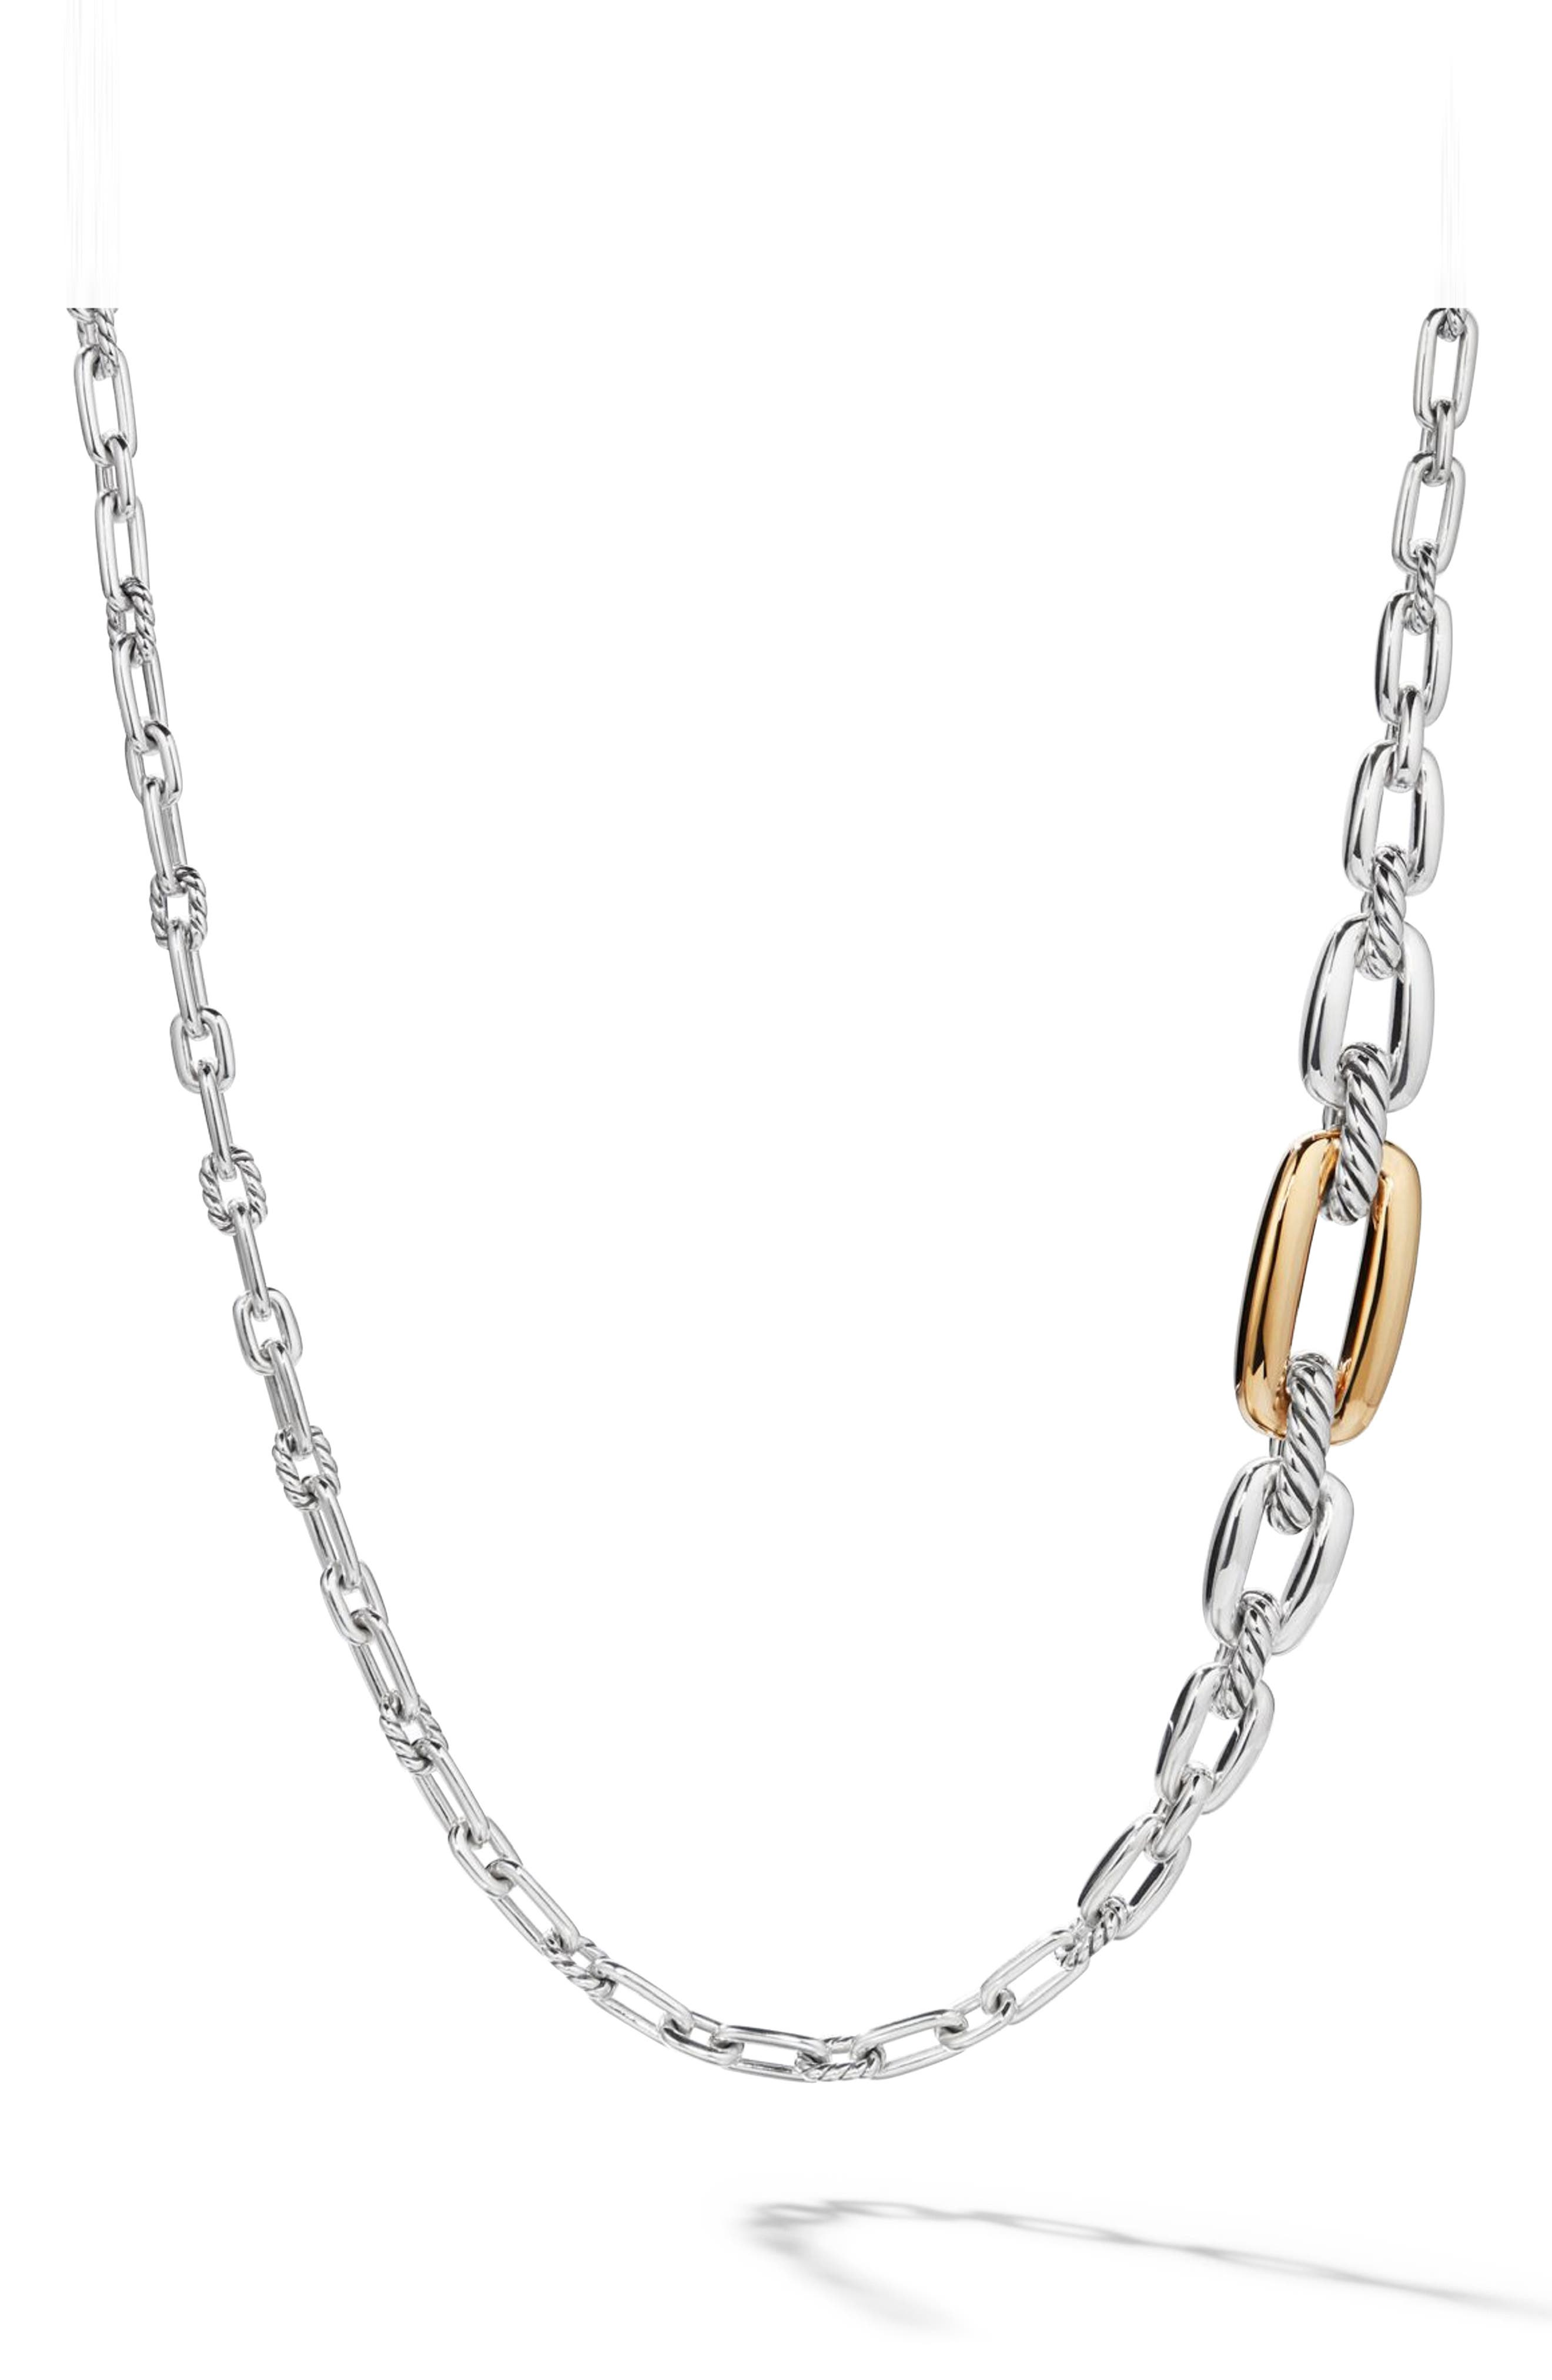 Wellesley Link Long Necklace with 18k Gold,                         Main,                         color, 18K YELLOW GOLD/ SILVER